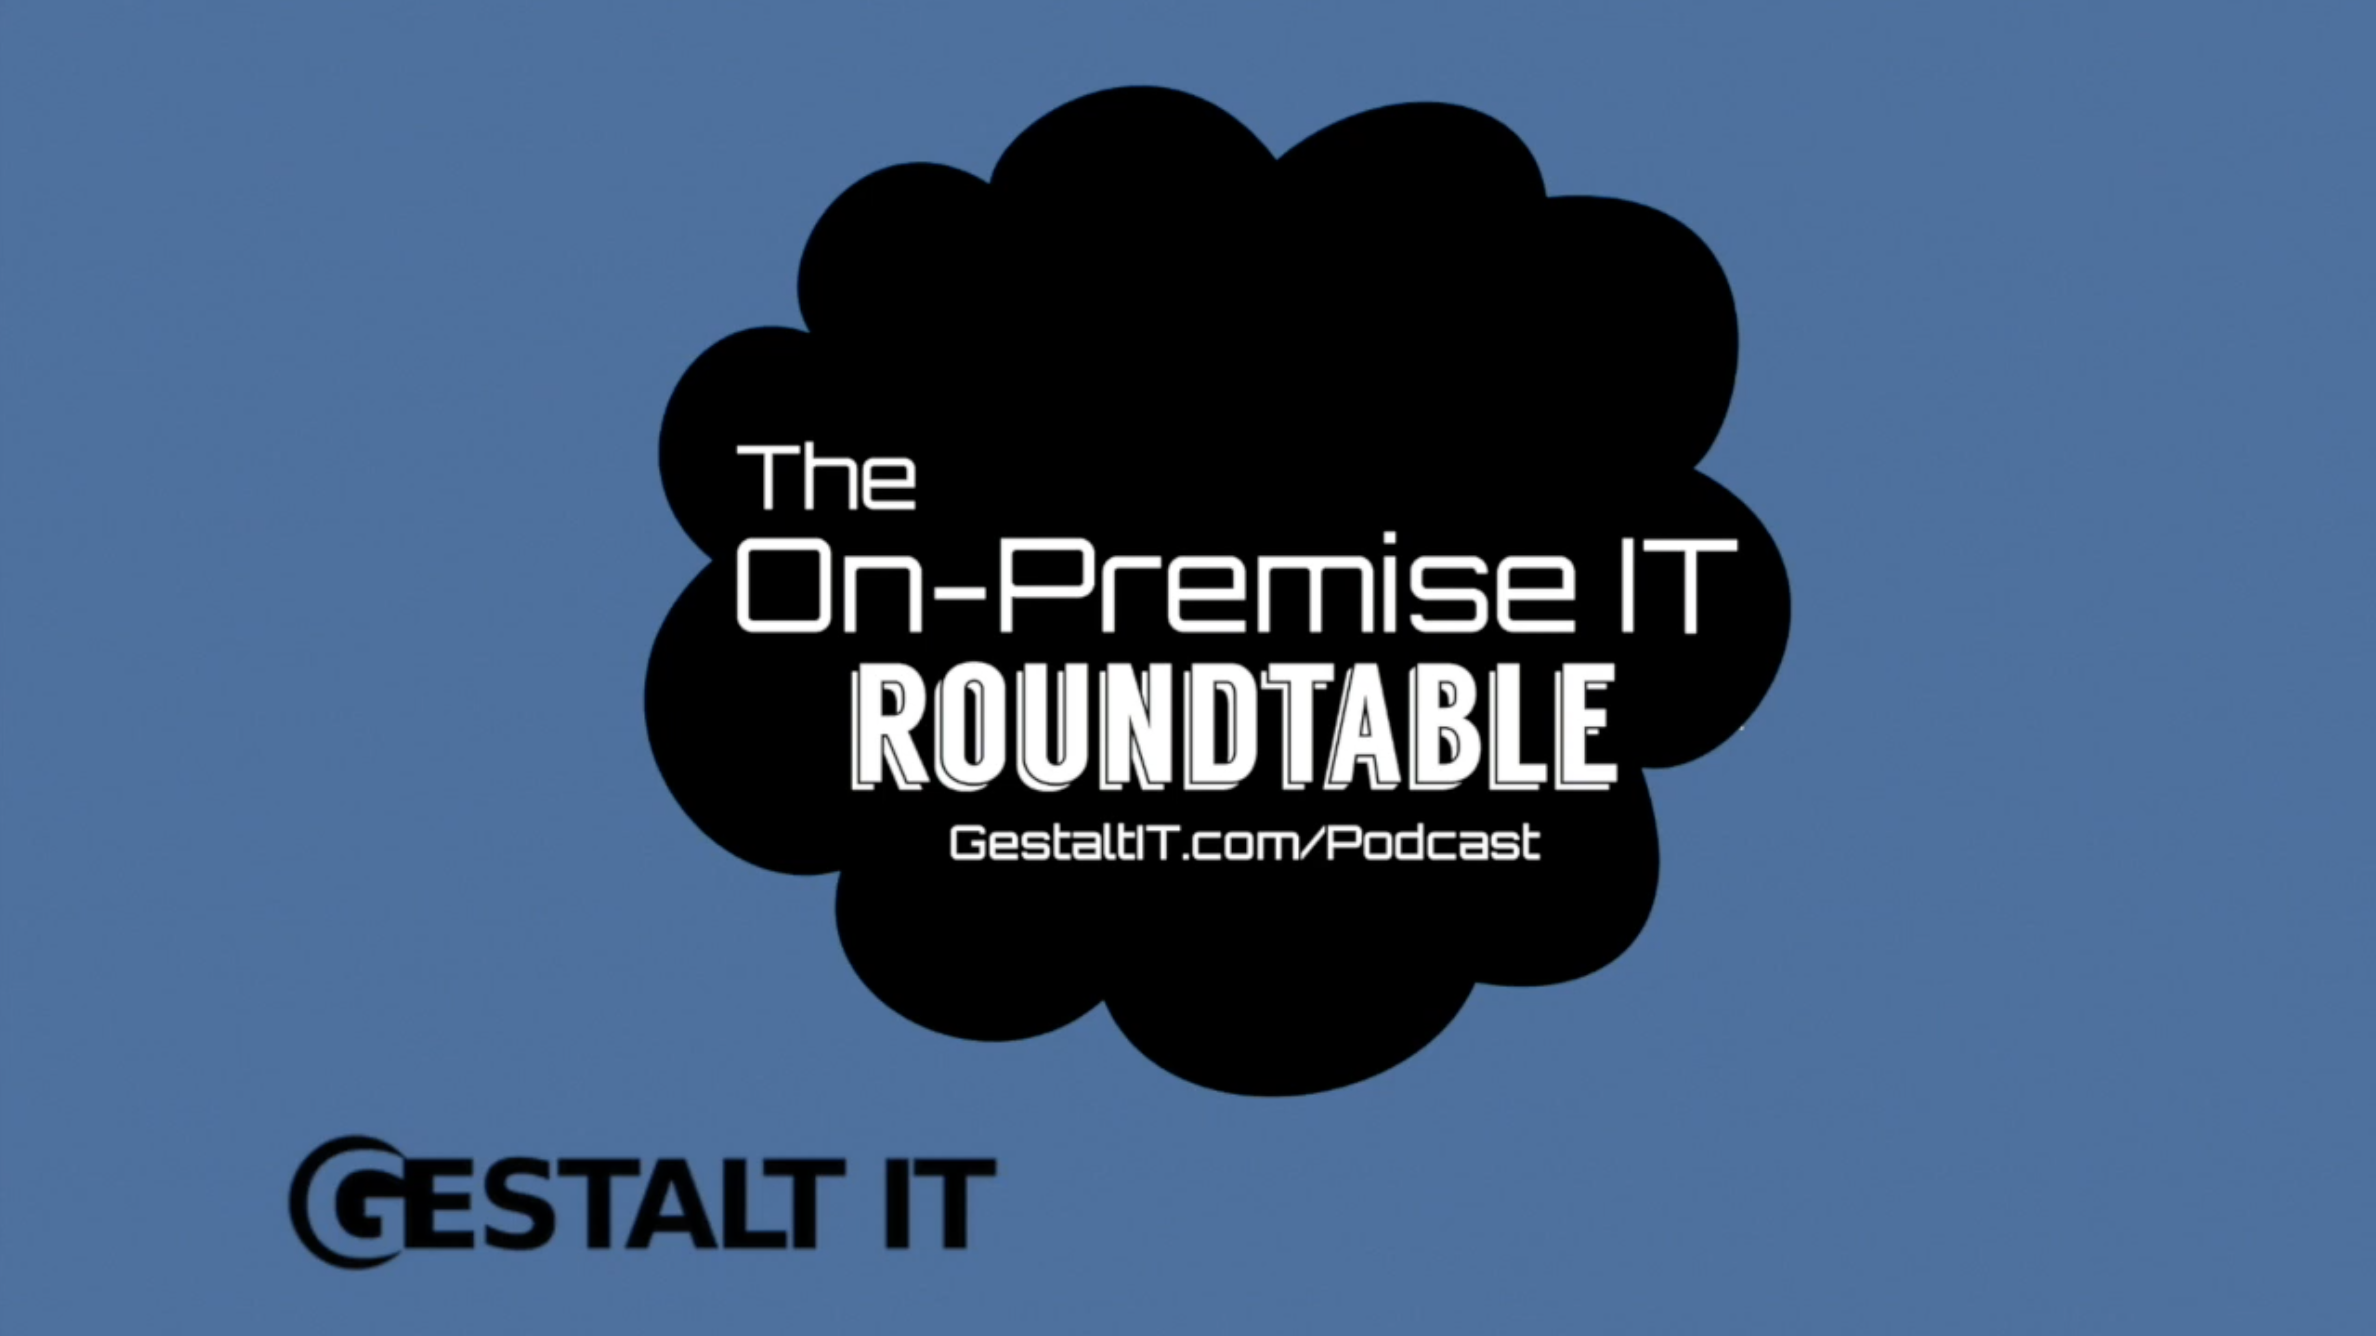 The On-Premise IT Roundtable Podcast: It's Time to Embrace the Bottlenecks in Storage